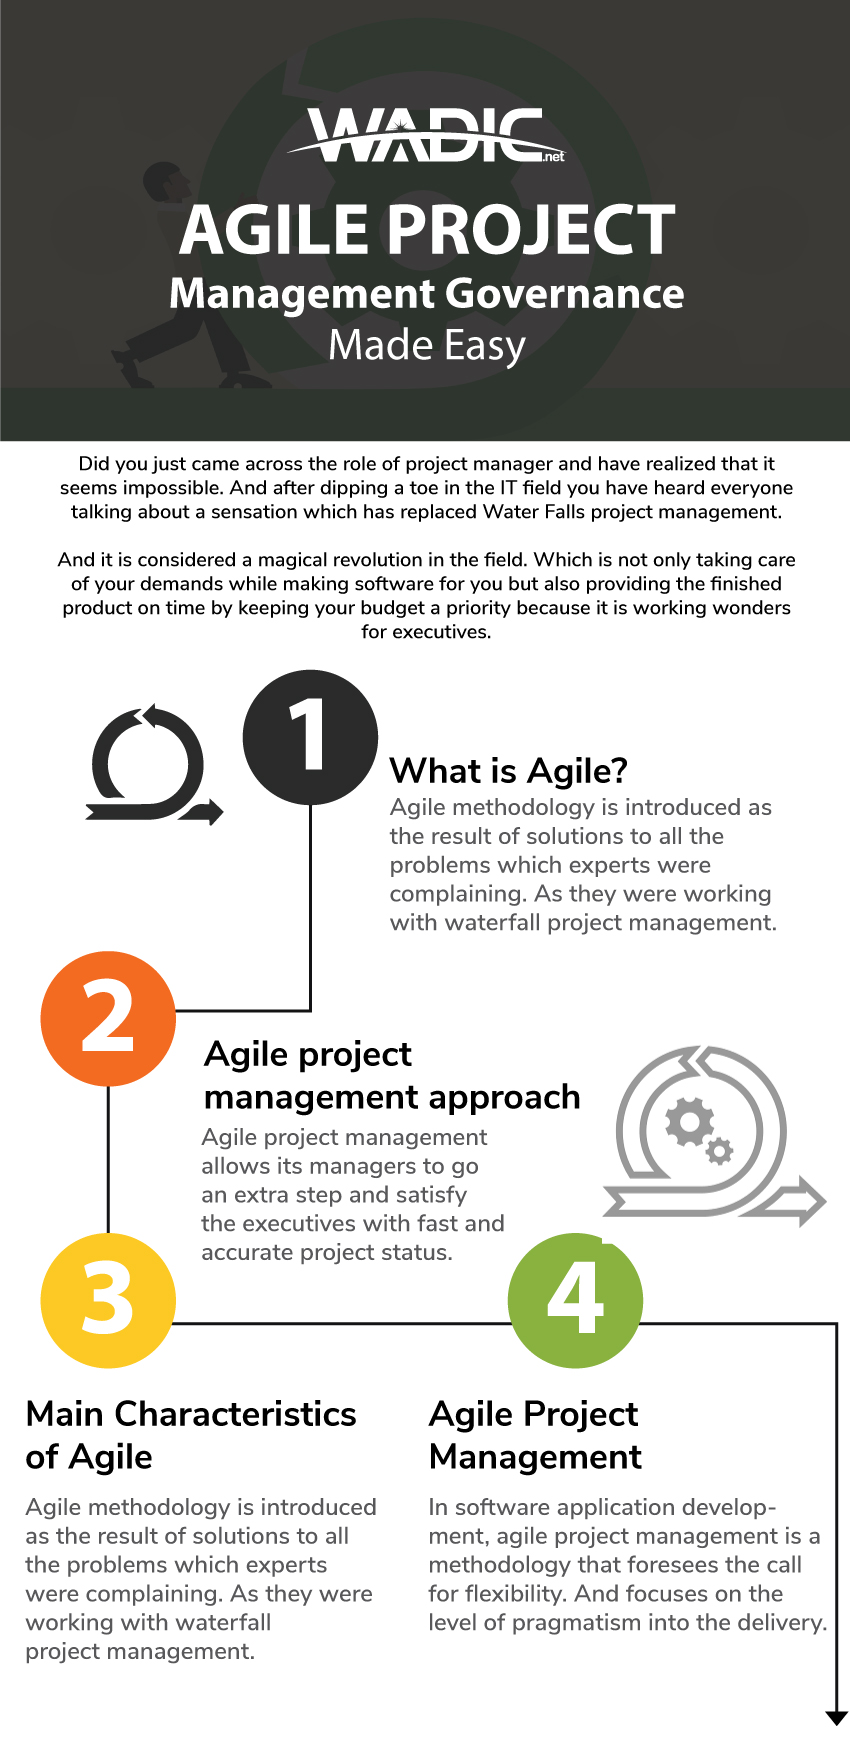 Governance of agile project methodologes